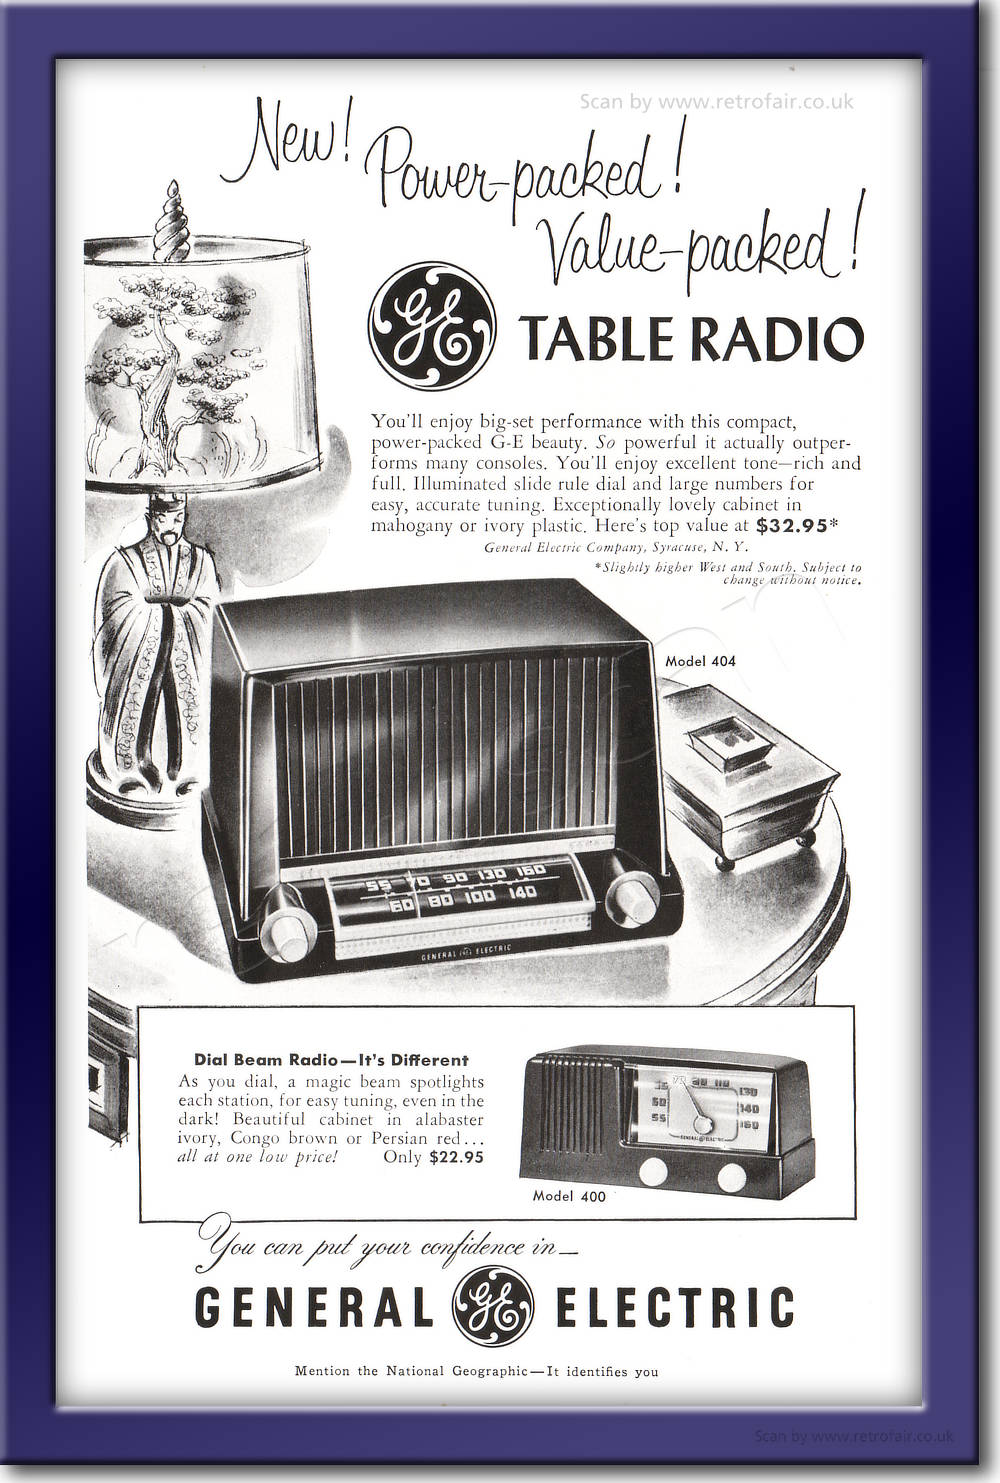 1951 General Electric Table Radio - framed preview retro